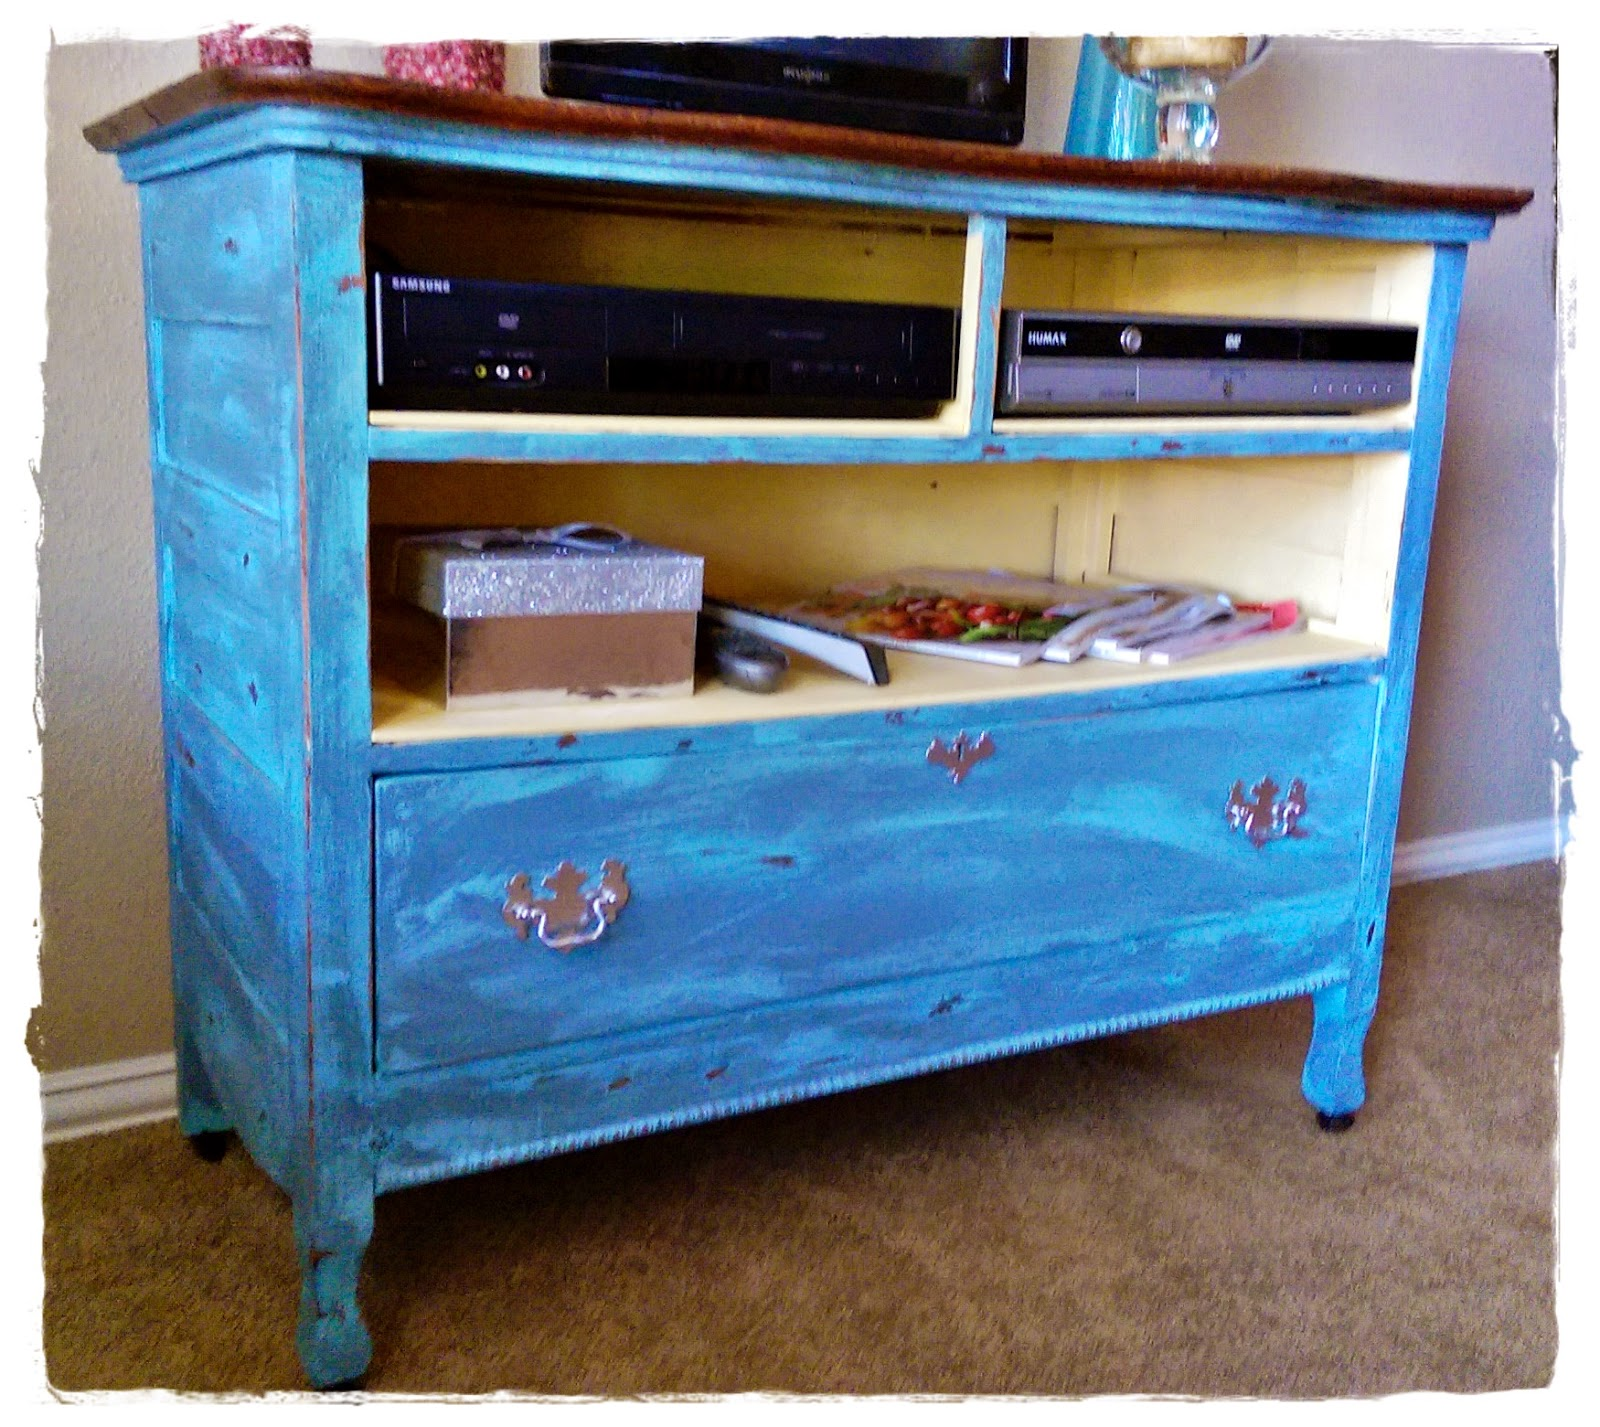 Meg made creations how to make wood furniture look old antique distressed with paint Restoring old wooden furniture